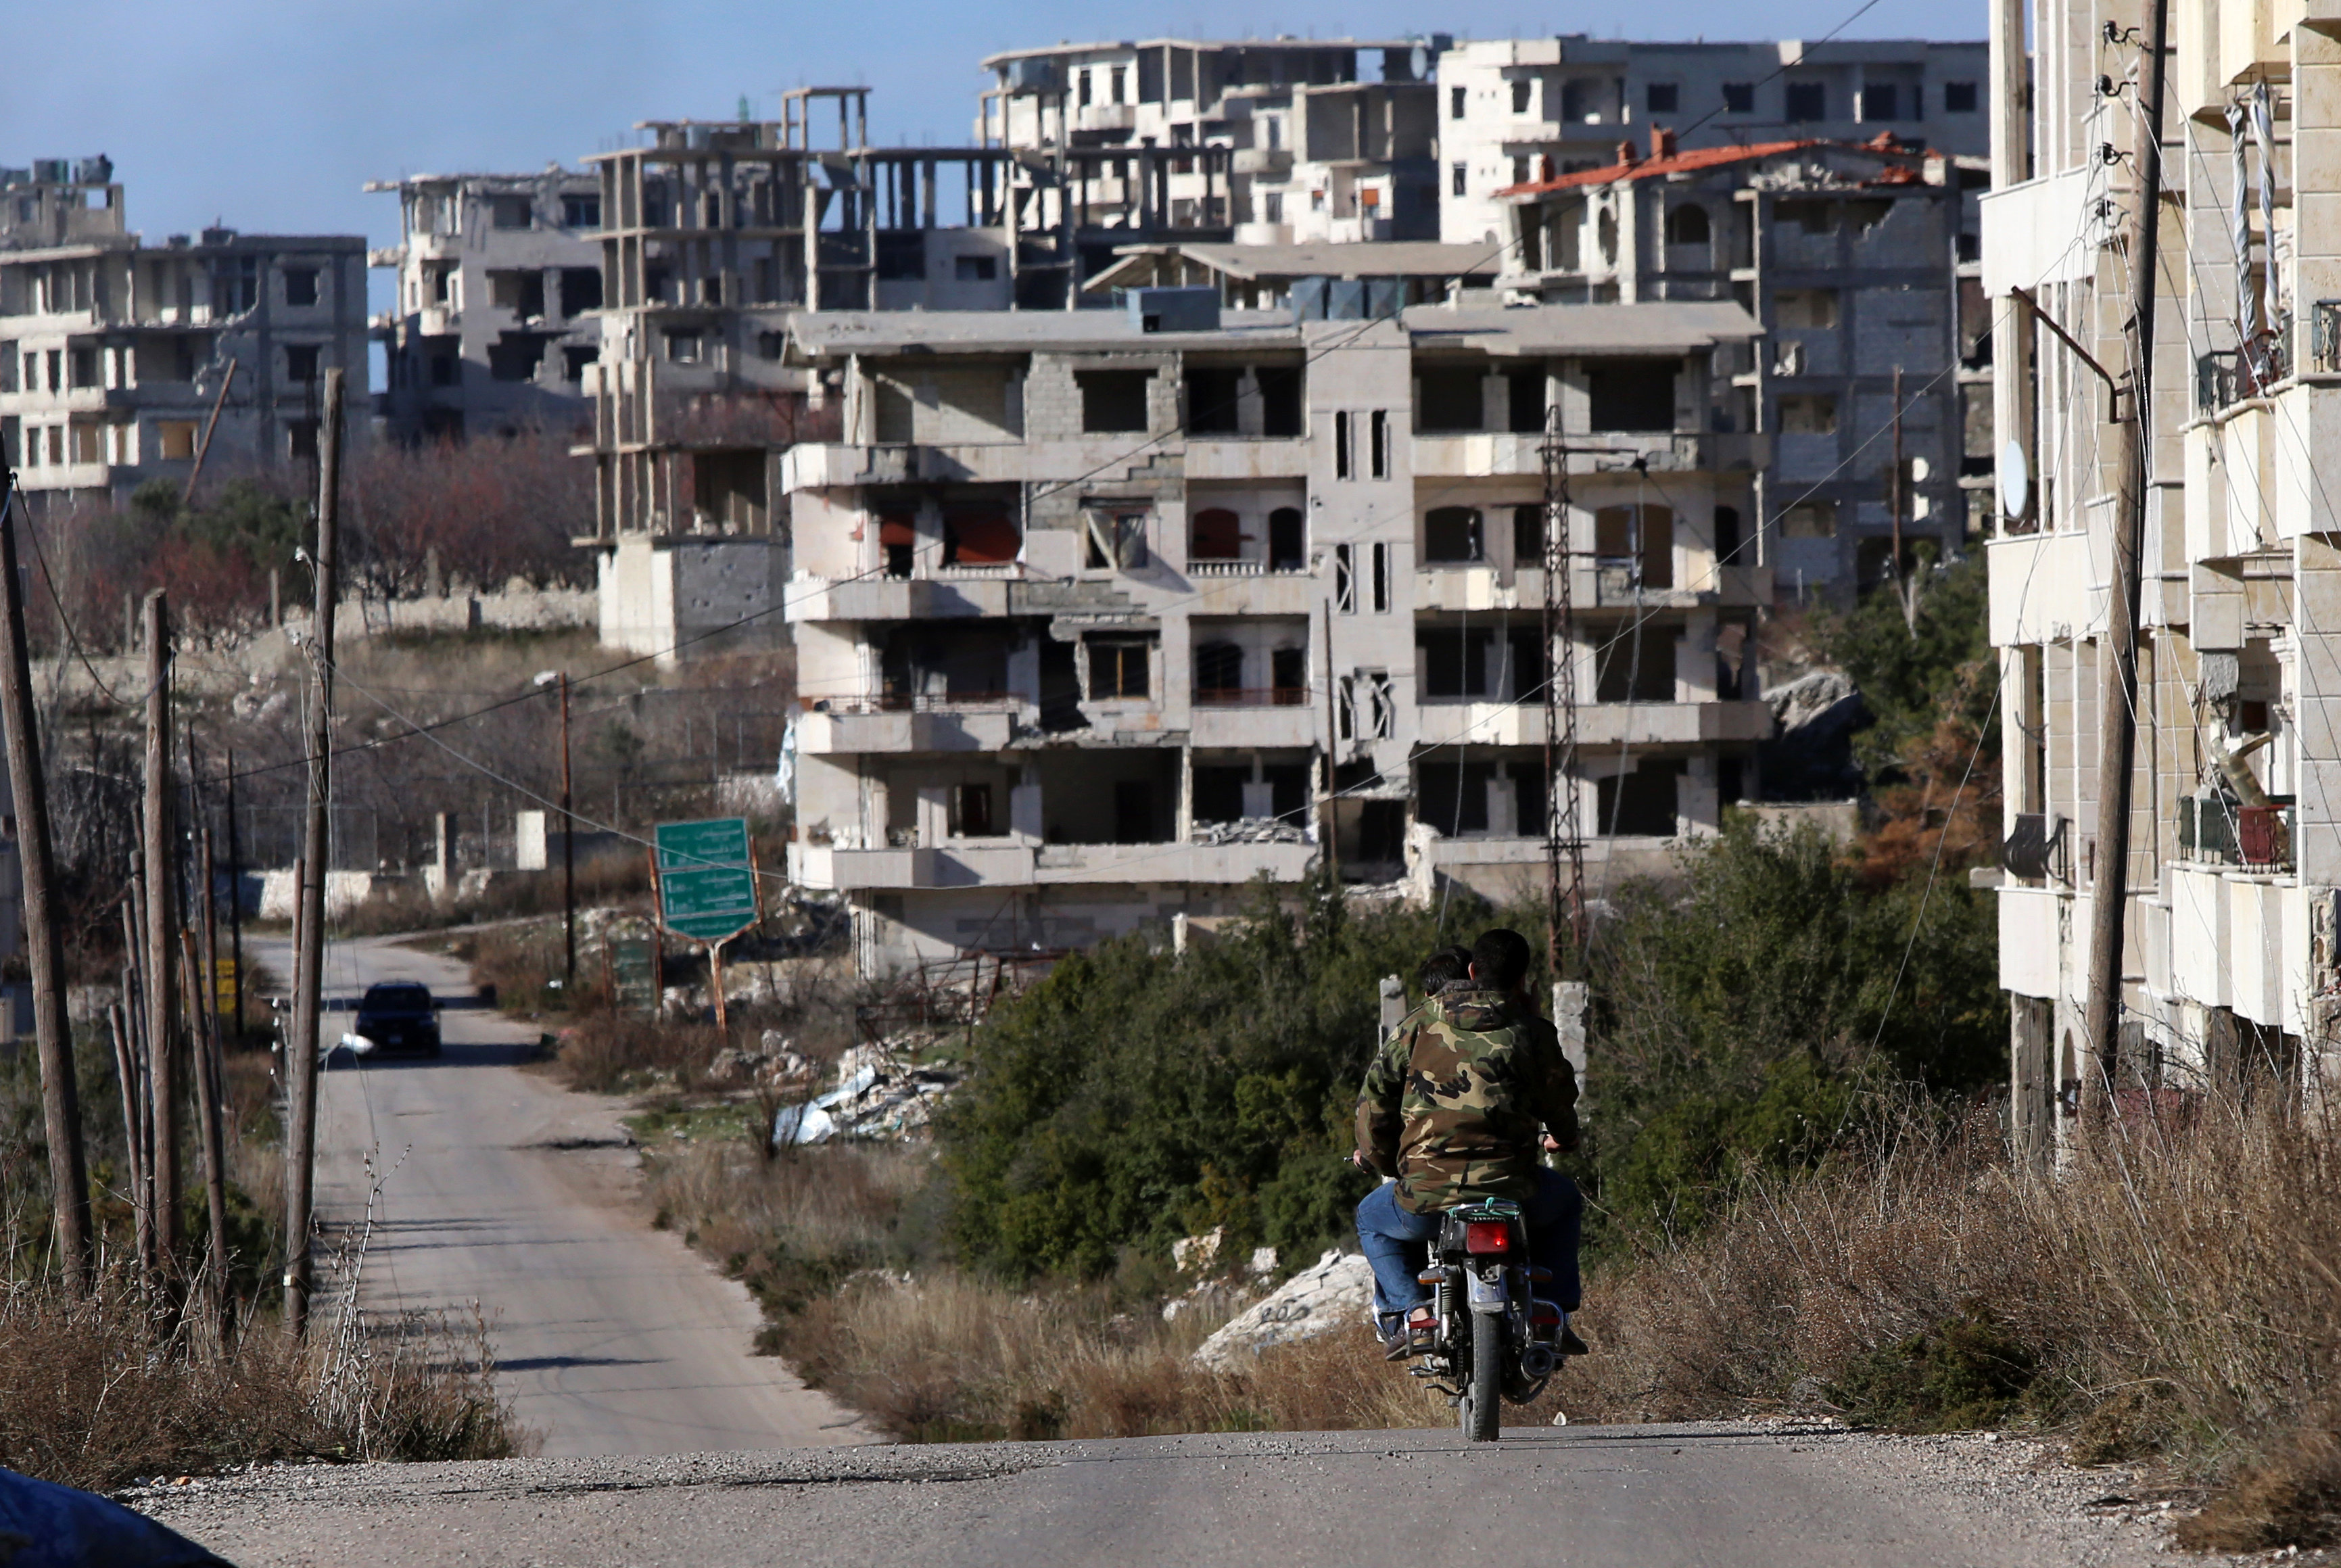 Syrian army soldiers ride a motorcycle in the village of Salma, in the northwestern province of Latakia on January 15, 2016